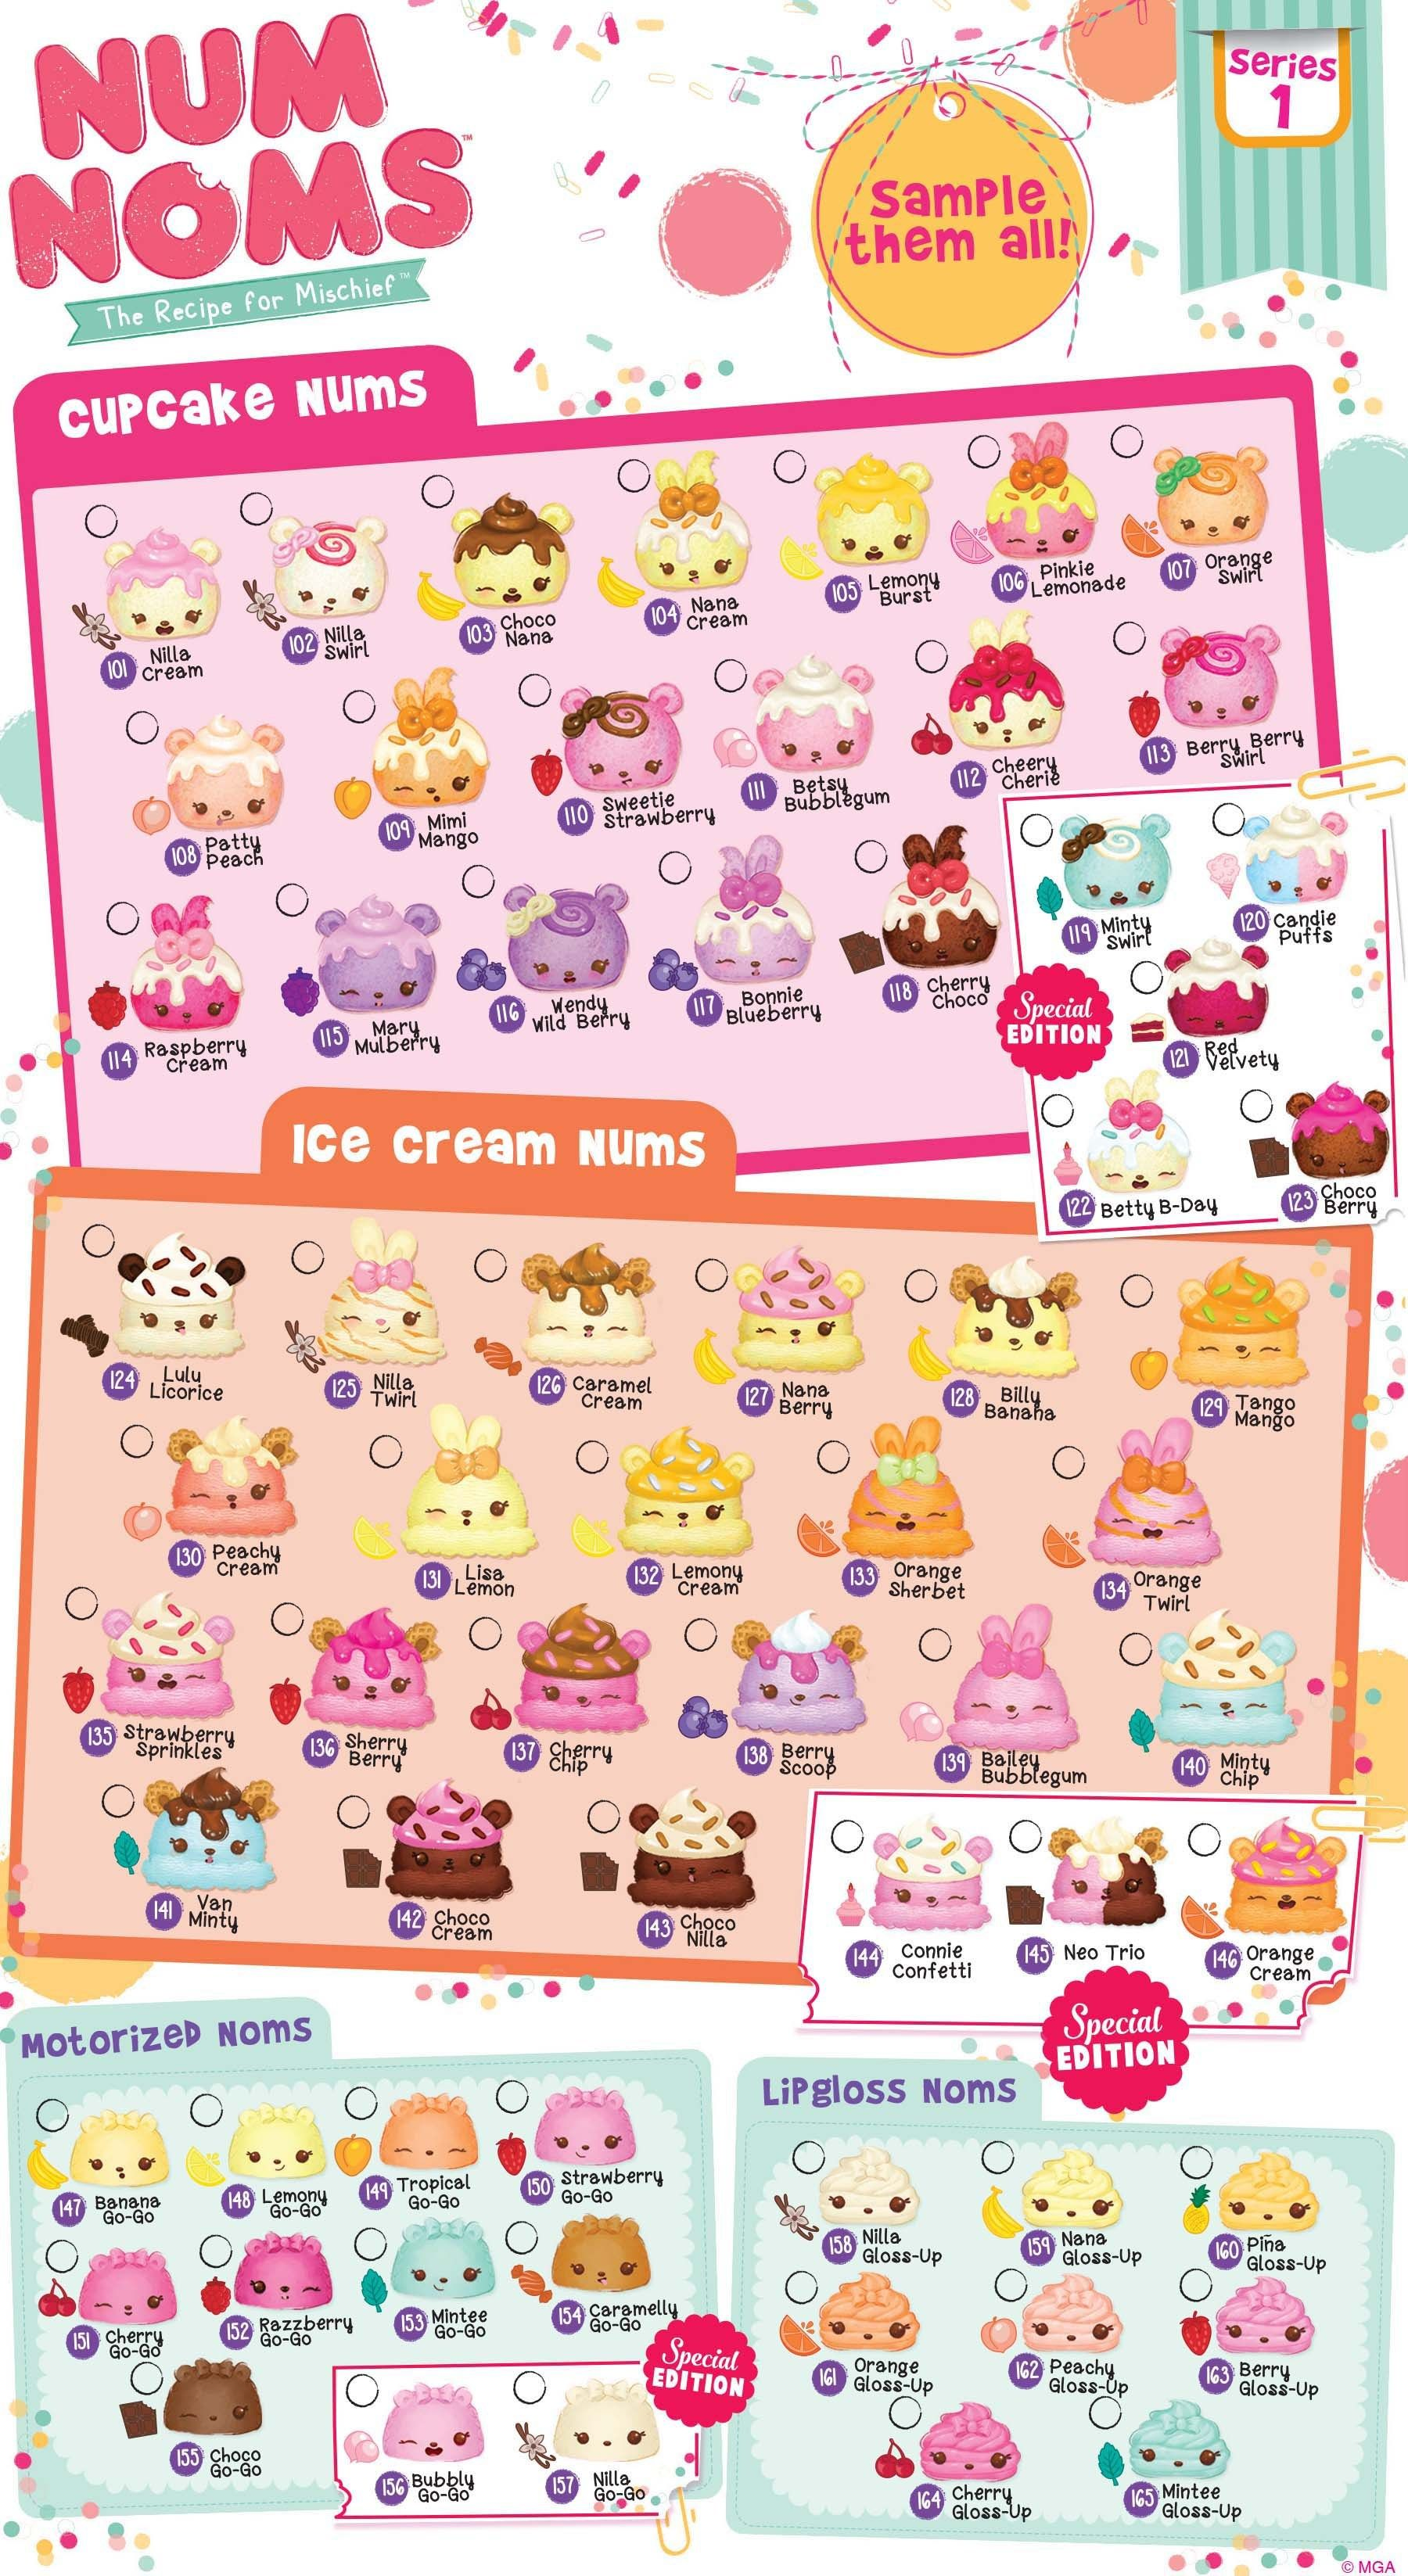 Num Noms Series 1 Collector Guide Checklist Pencil Toppers Slime Toy